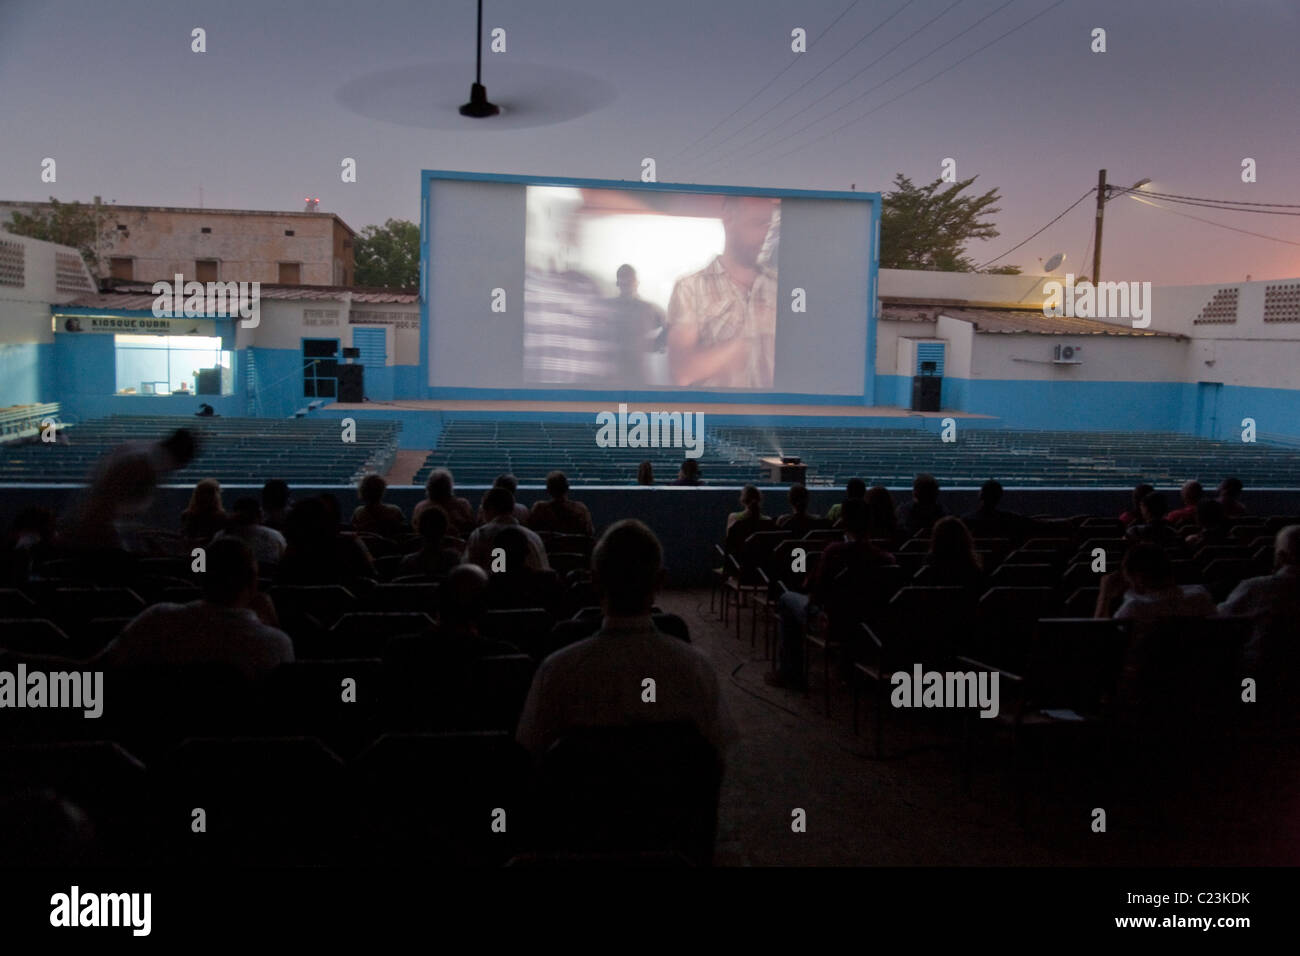 A screening at the Ciné Ourbi open-air cinema during FESPACO film festival in Ouagadougou, Burkina Faso - Stock Image